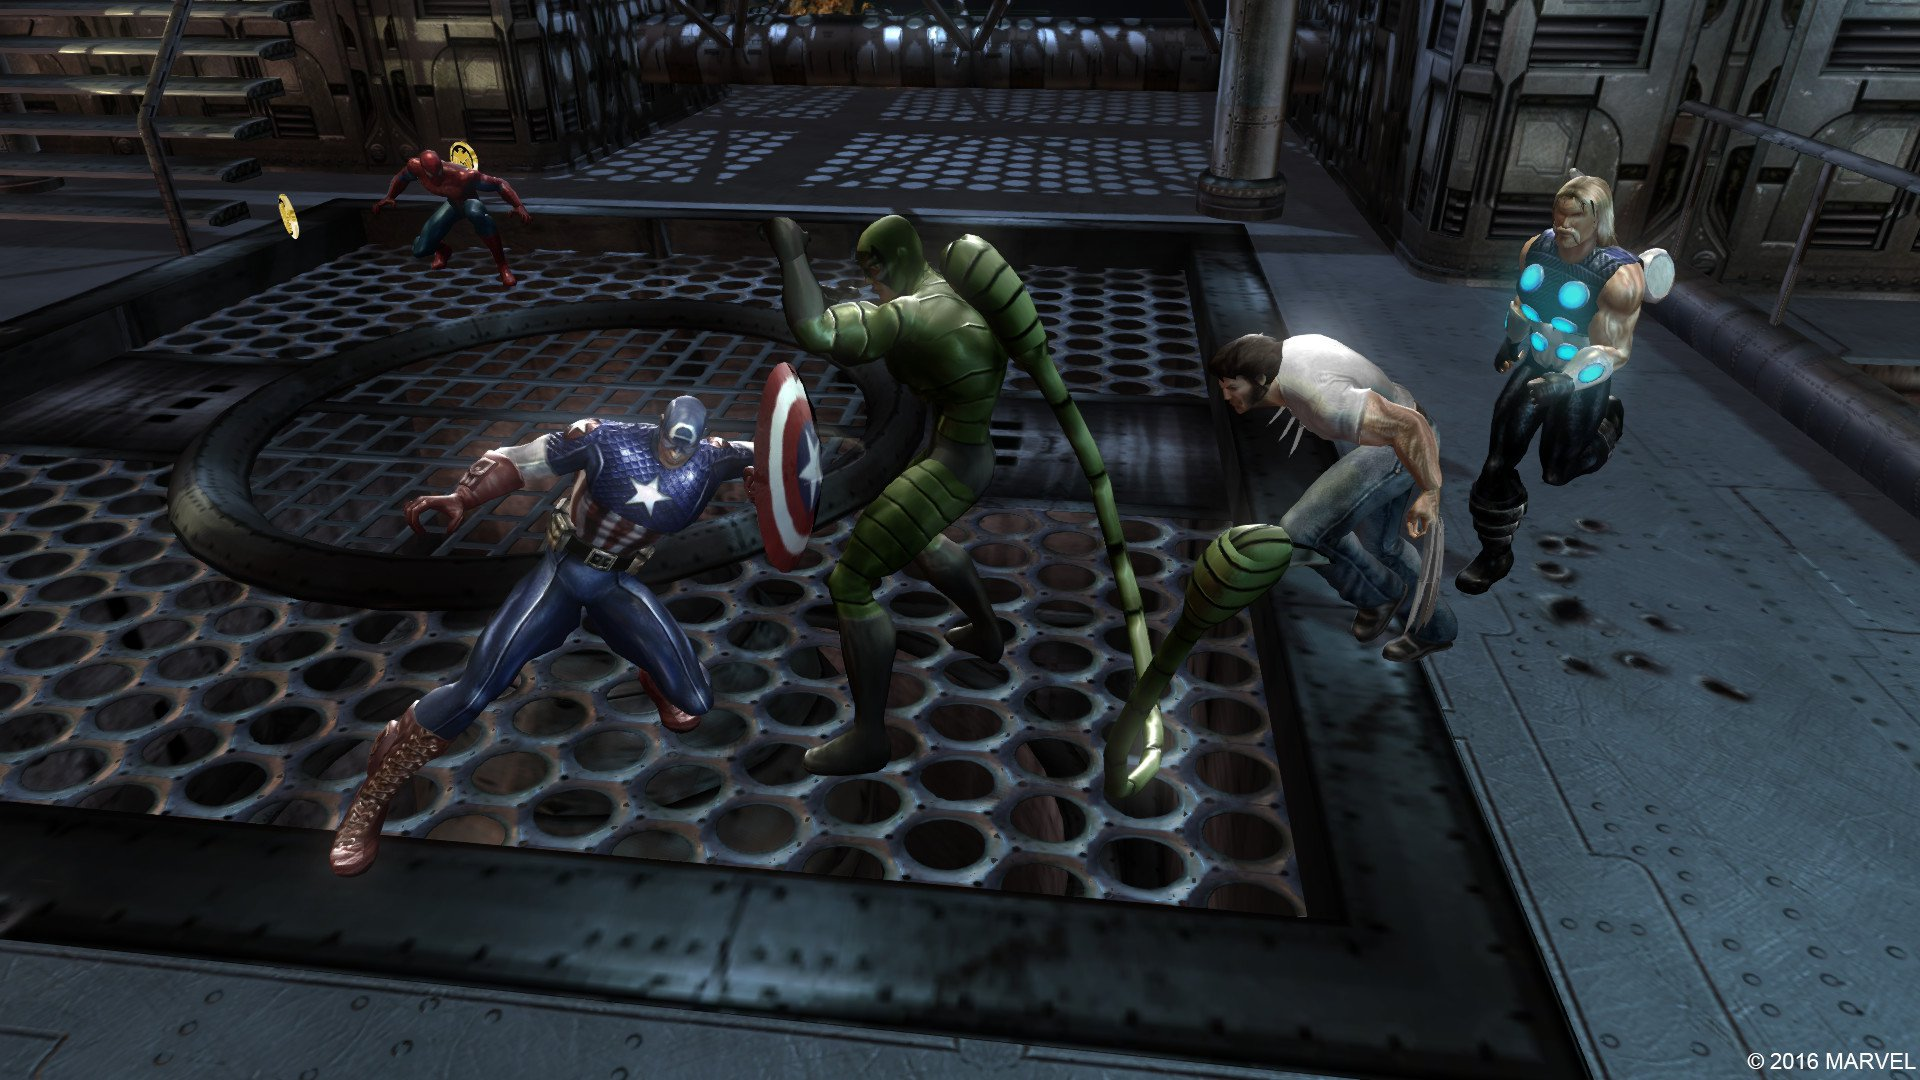 066f968a191 eGG | 4 Best Marvel Video Games of All Time (and 3 upcoming ones we ...